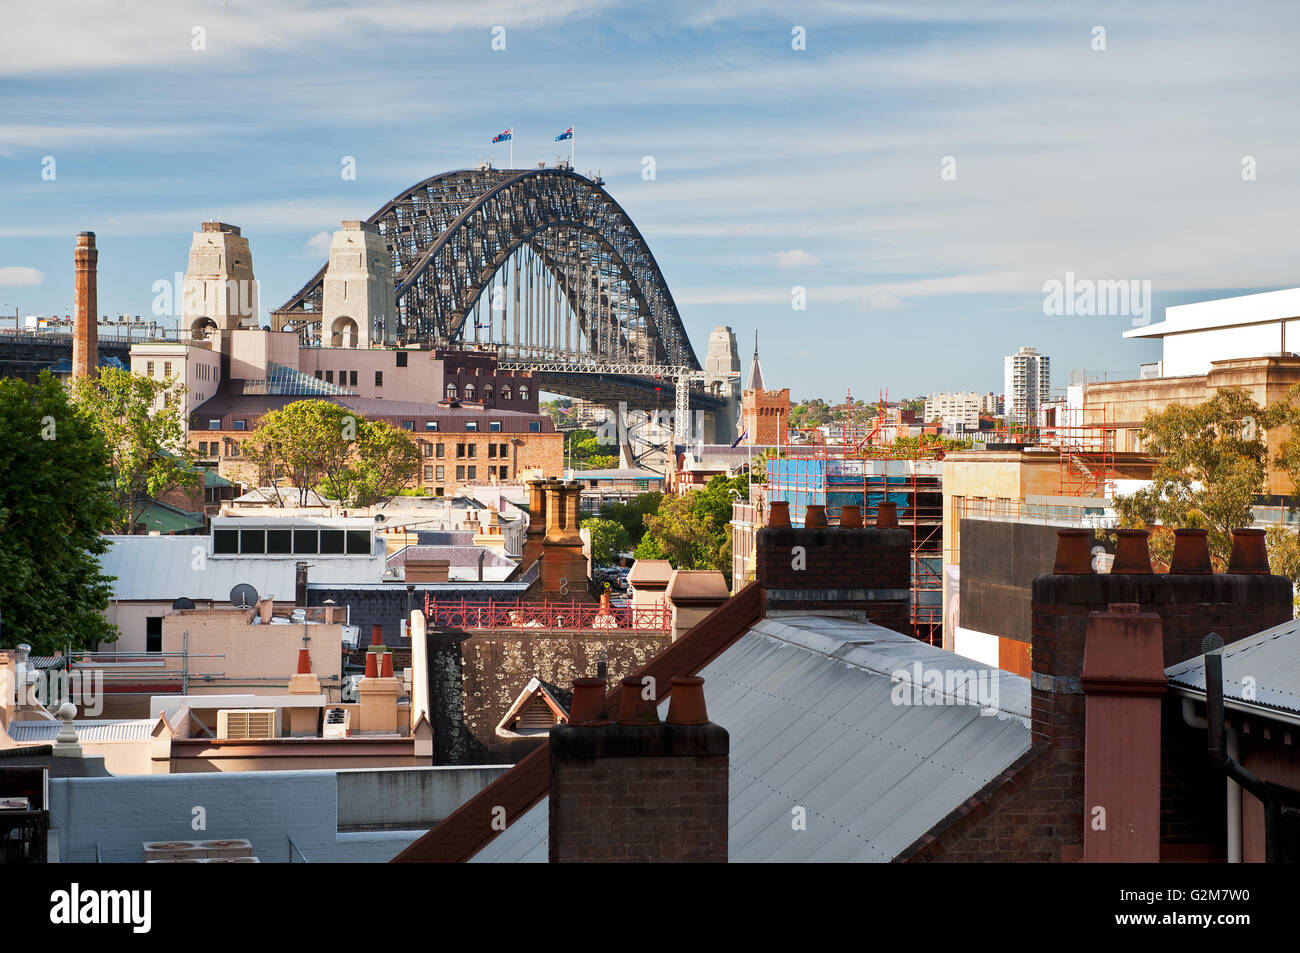 Sydney's 'The Rocks' with the Harbour Bridge. - Stock Image